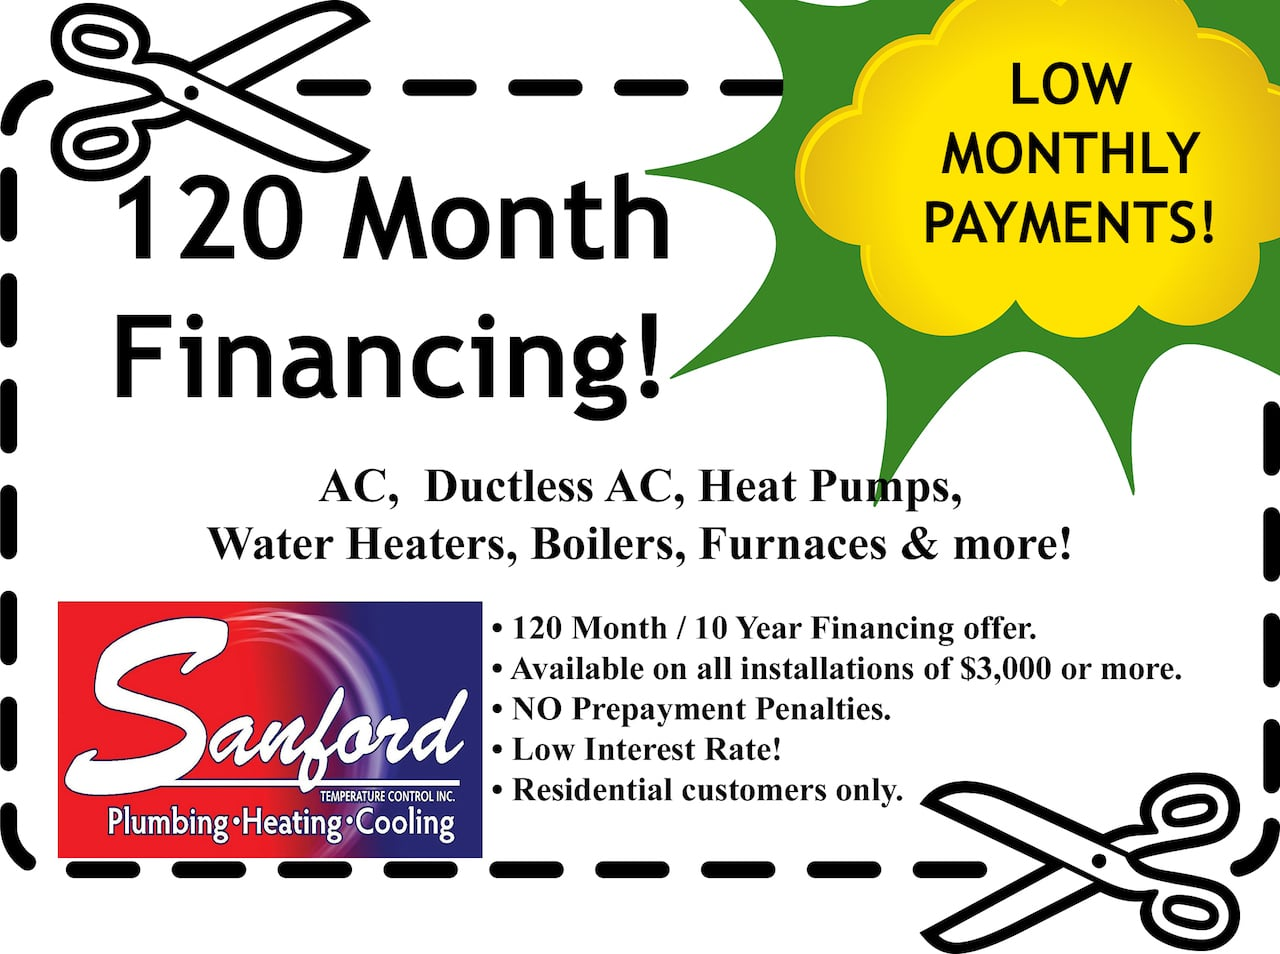 120 Month Financing